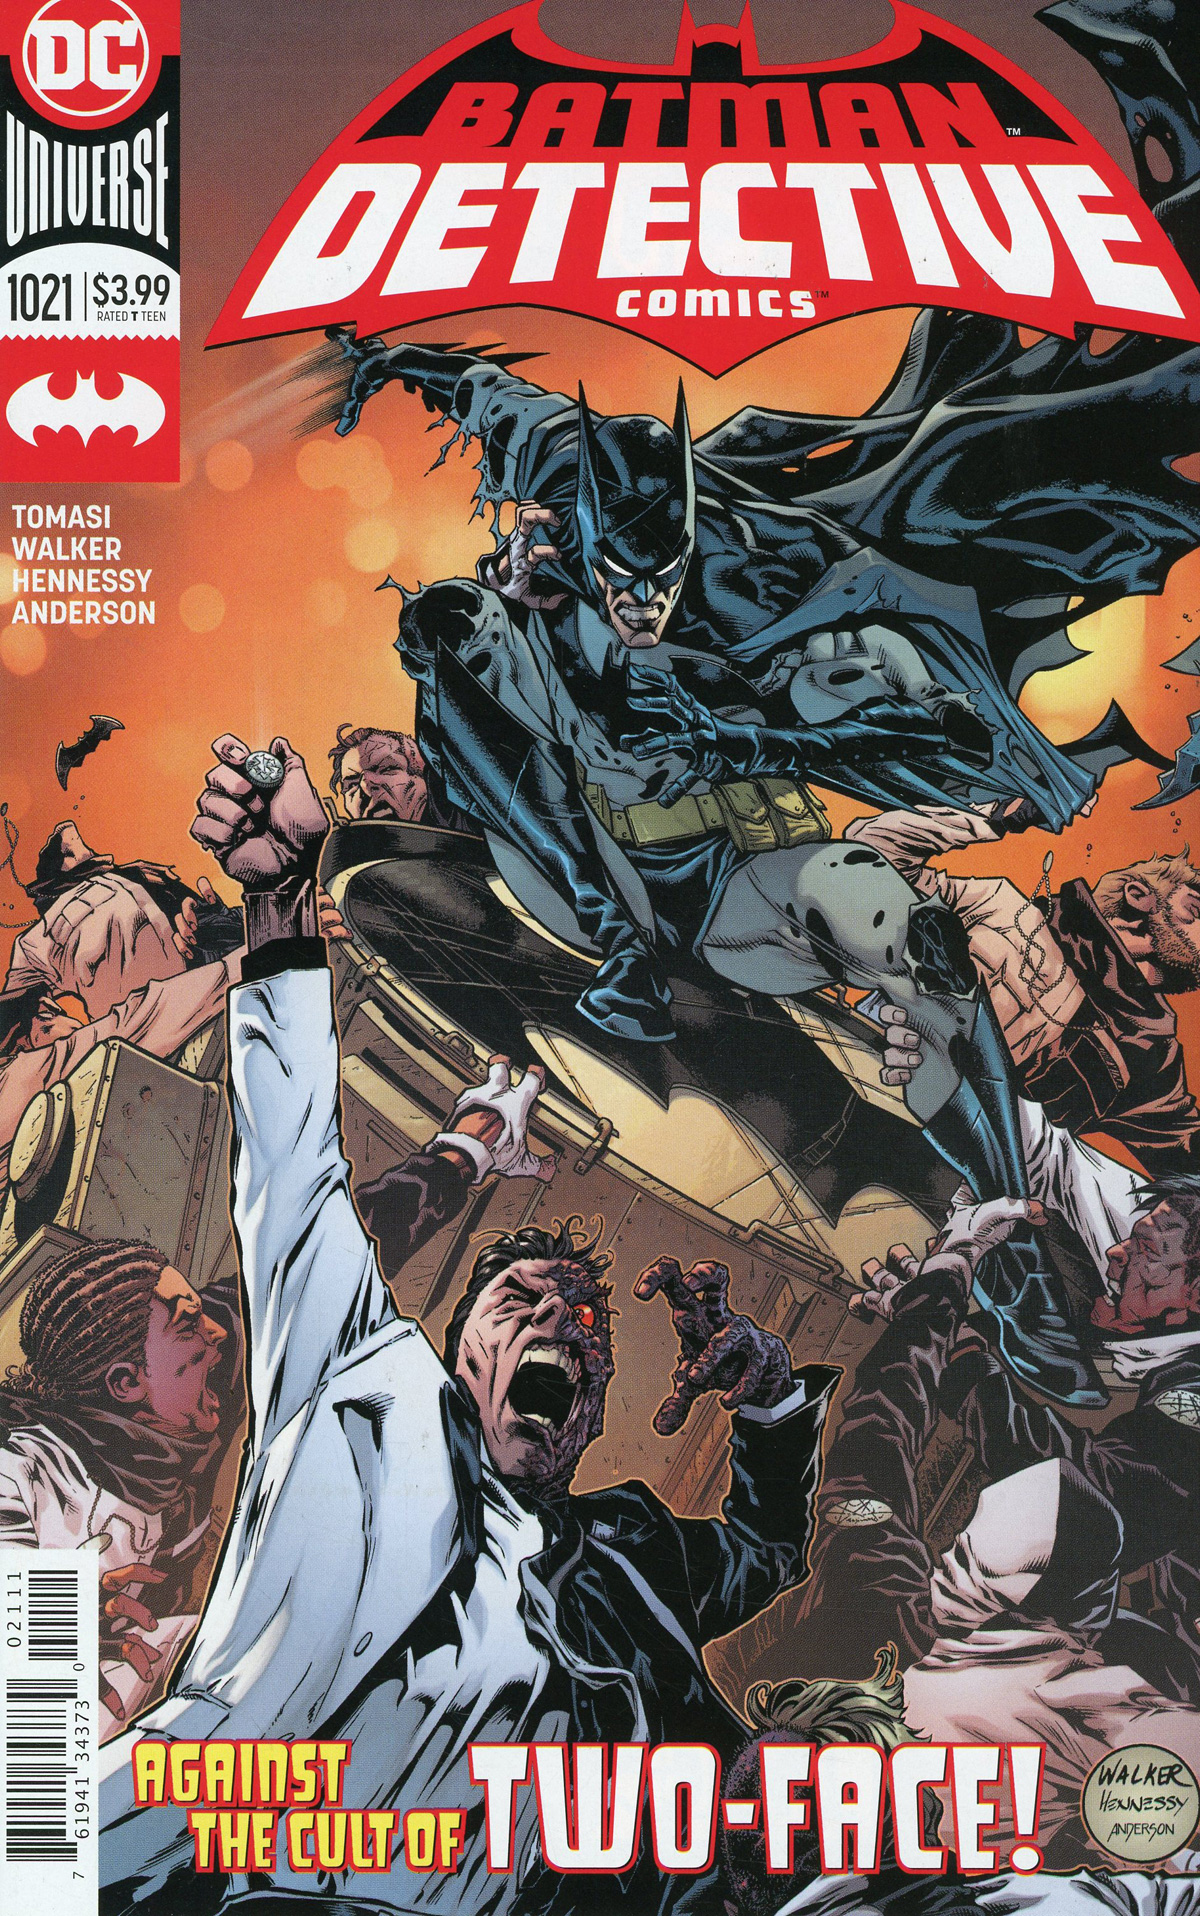 Detective Comics Vol 2 #1021 Cover A Regular Brad Walker & Andrew Hennessy Cover